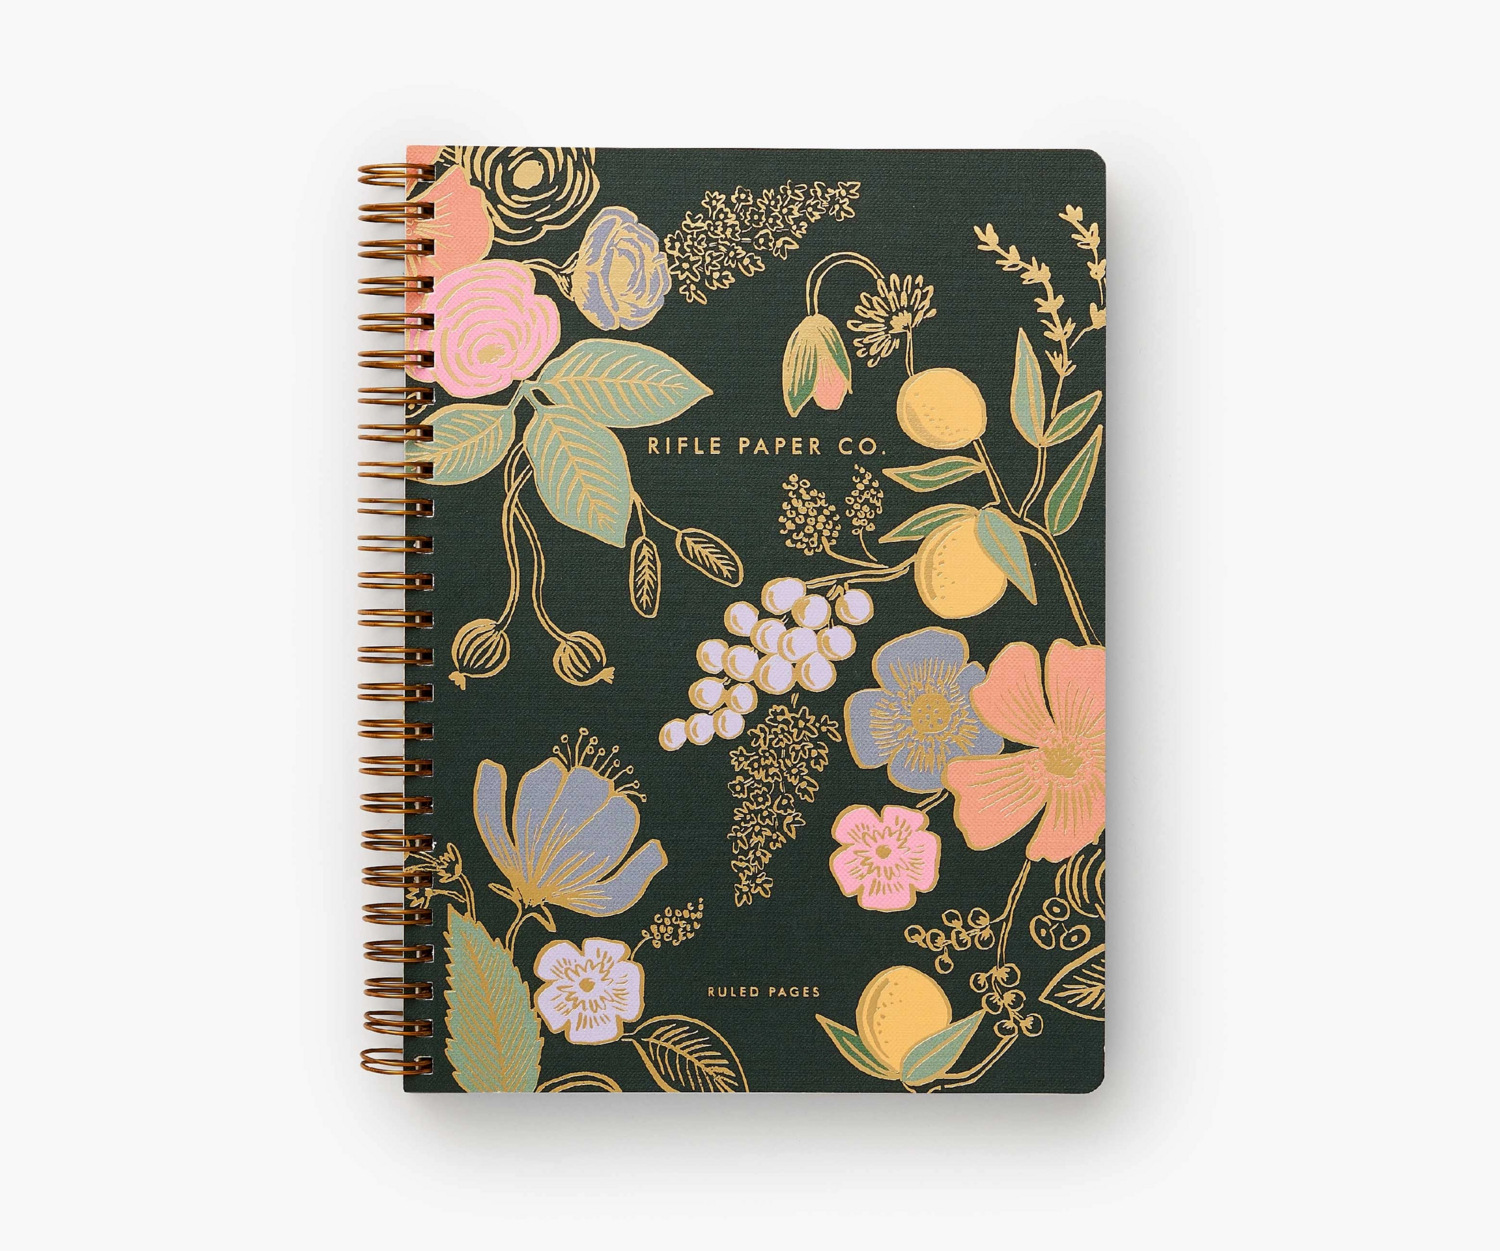 Colette Spiral Notebook - Rifle Paper Co. RPC44